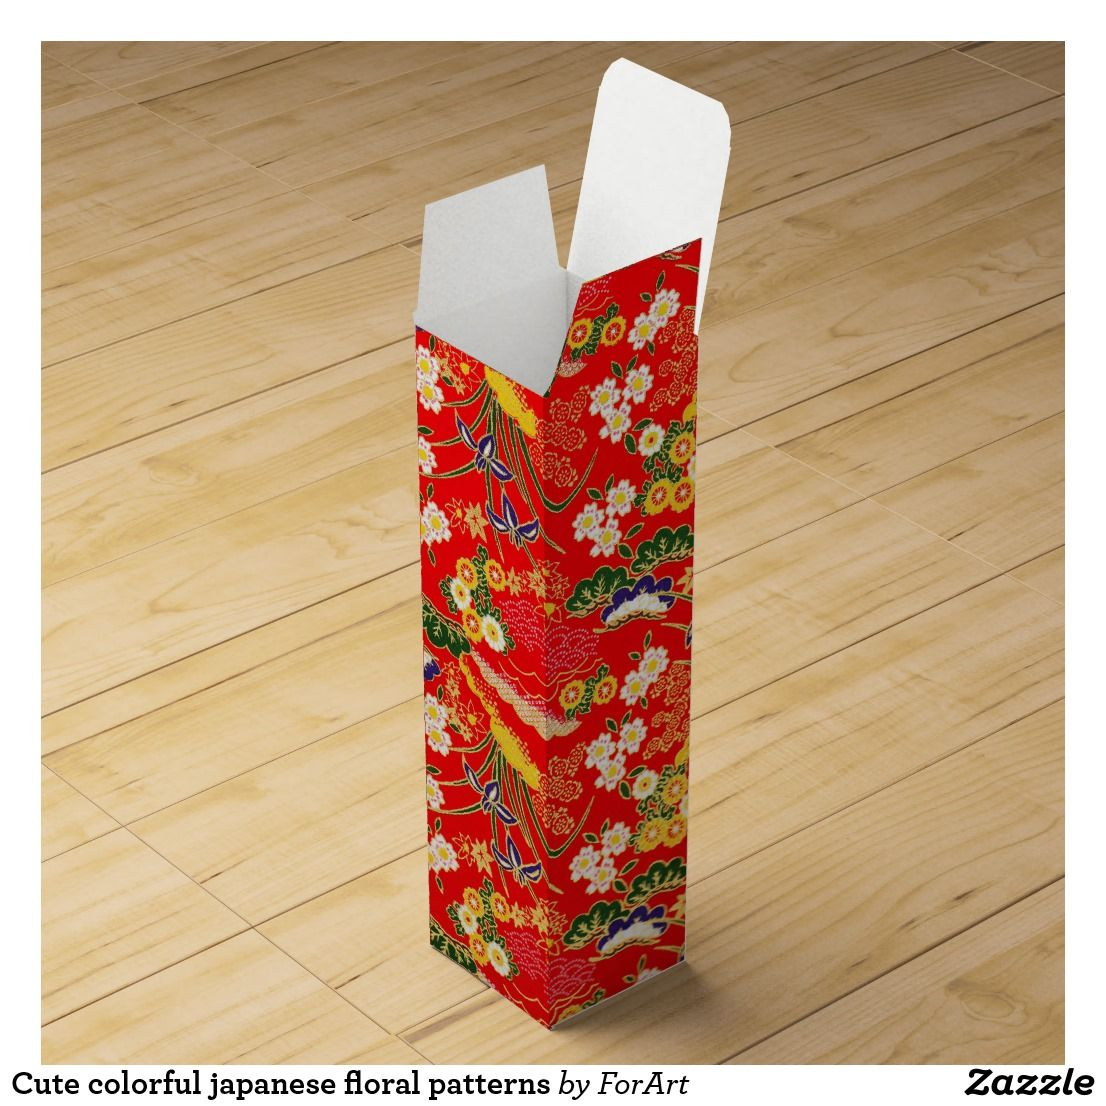 Cute Colorful Japanese Floral Patterns Wine Gift Box Zazzle Com Wine Gift Boxes Wine Box Crafts Christmas Craft Supplies